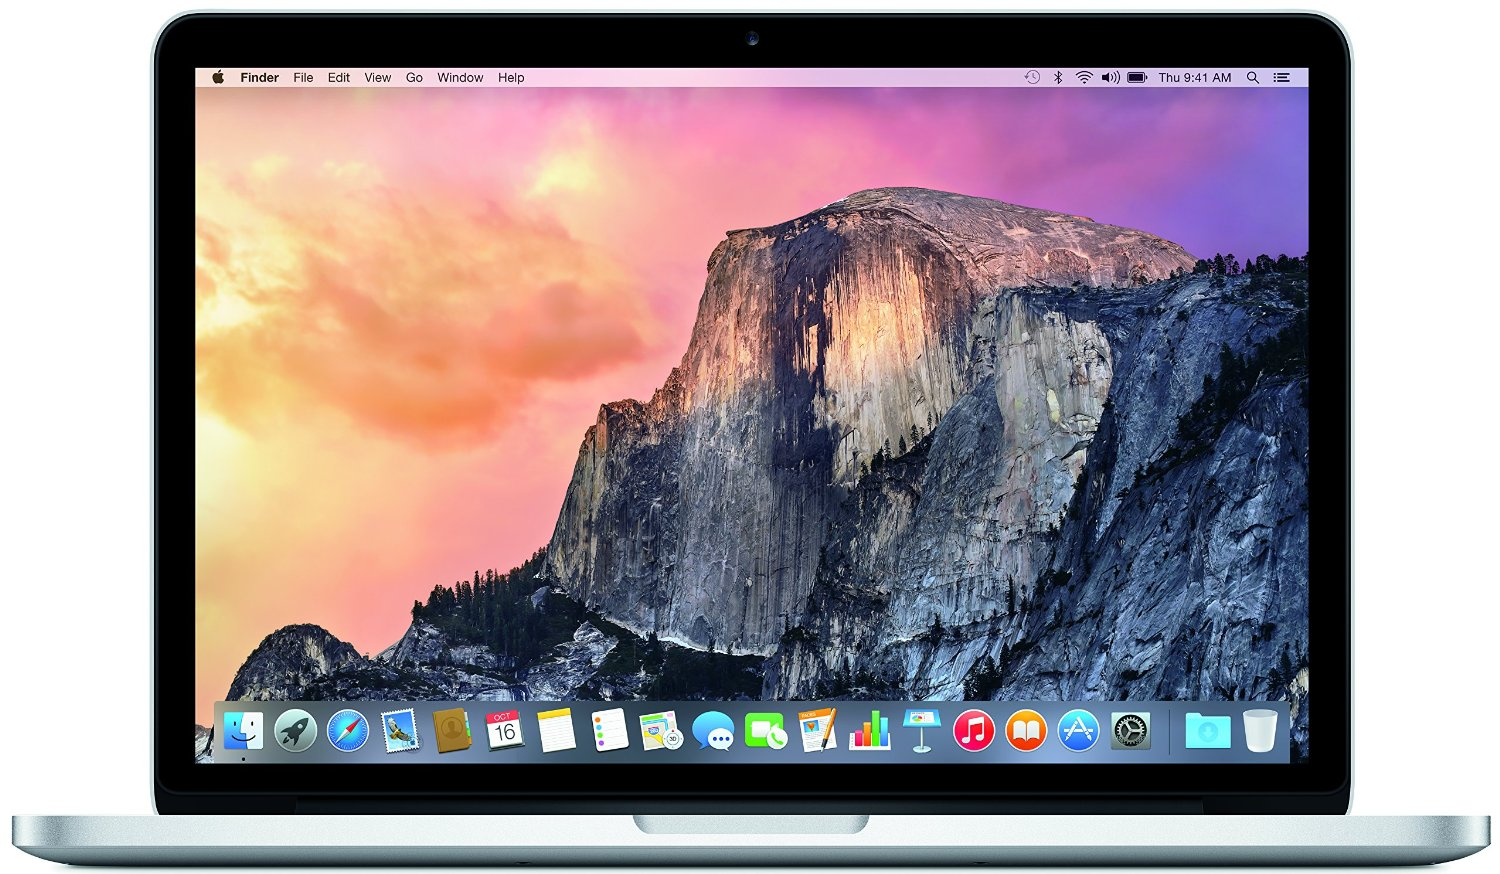 Apple Macbook Pro 13.3 Inch Laptop with Retina Display - Overall Best Laptop for College Students 2015